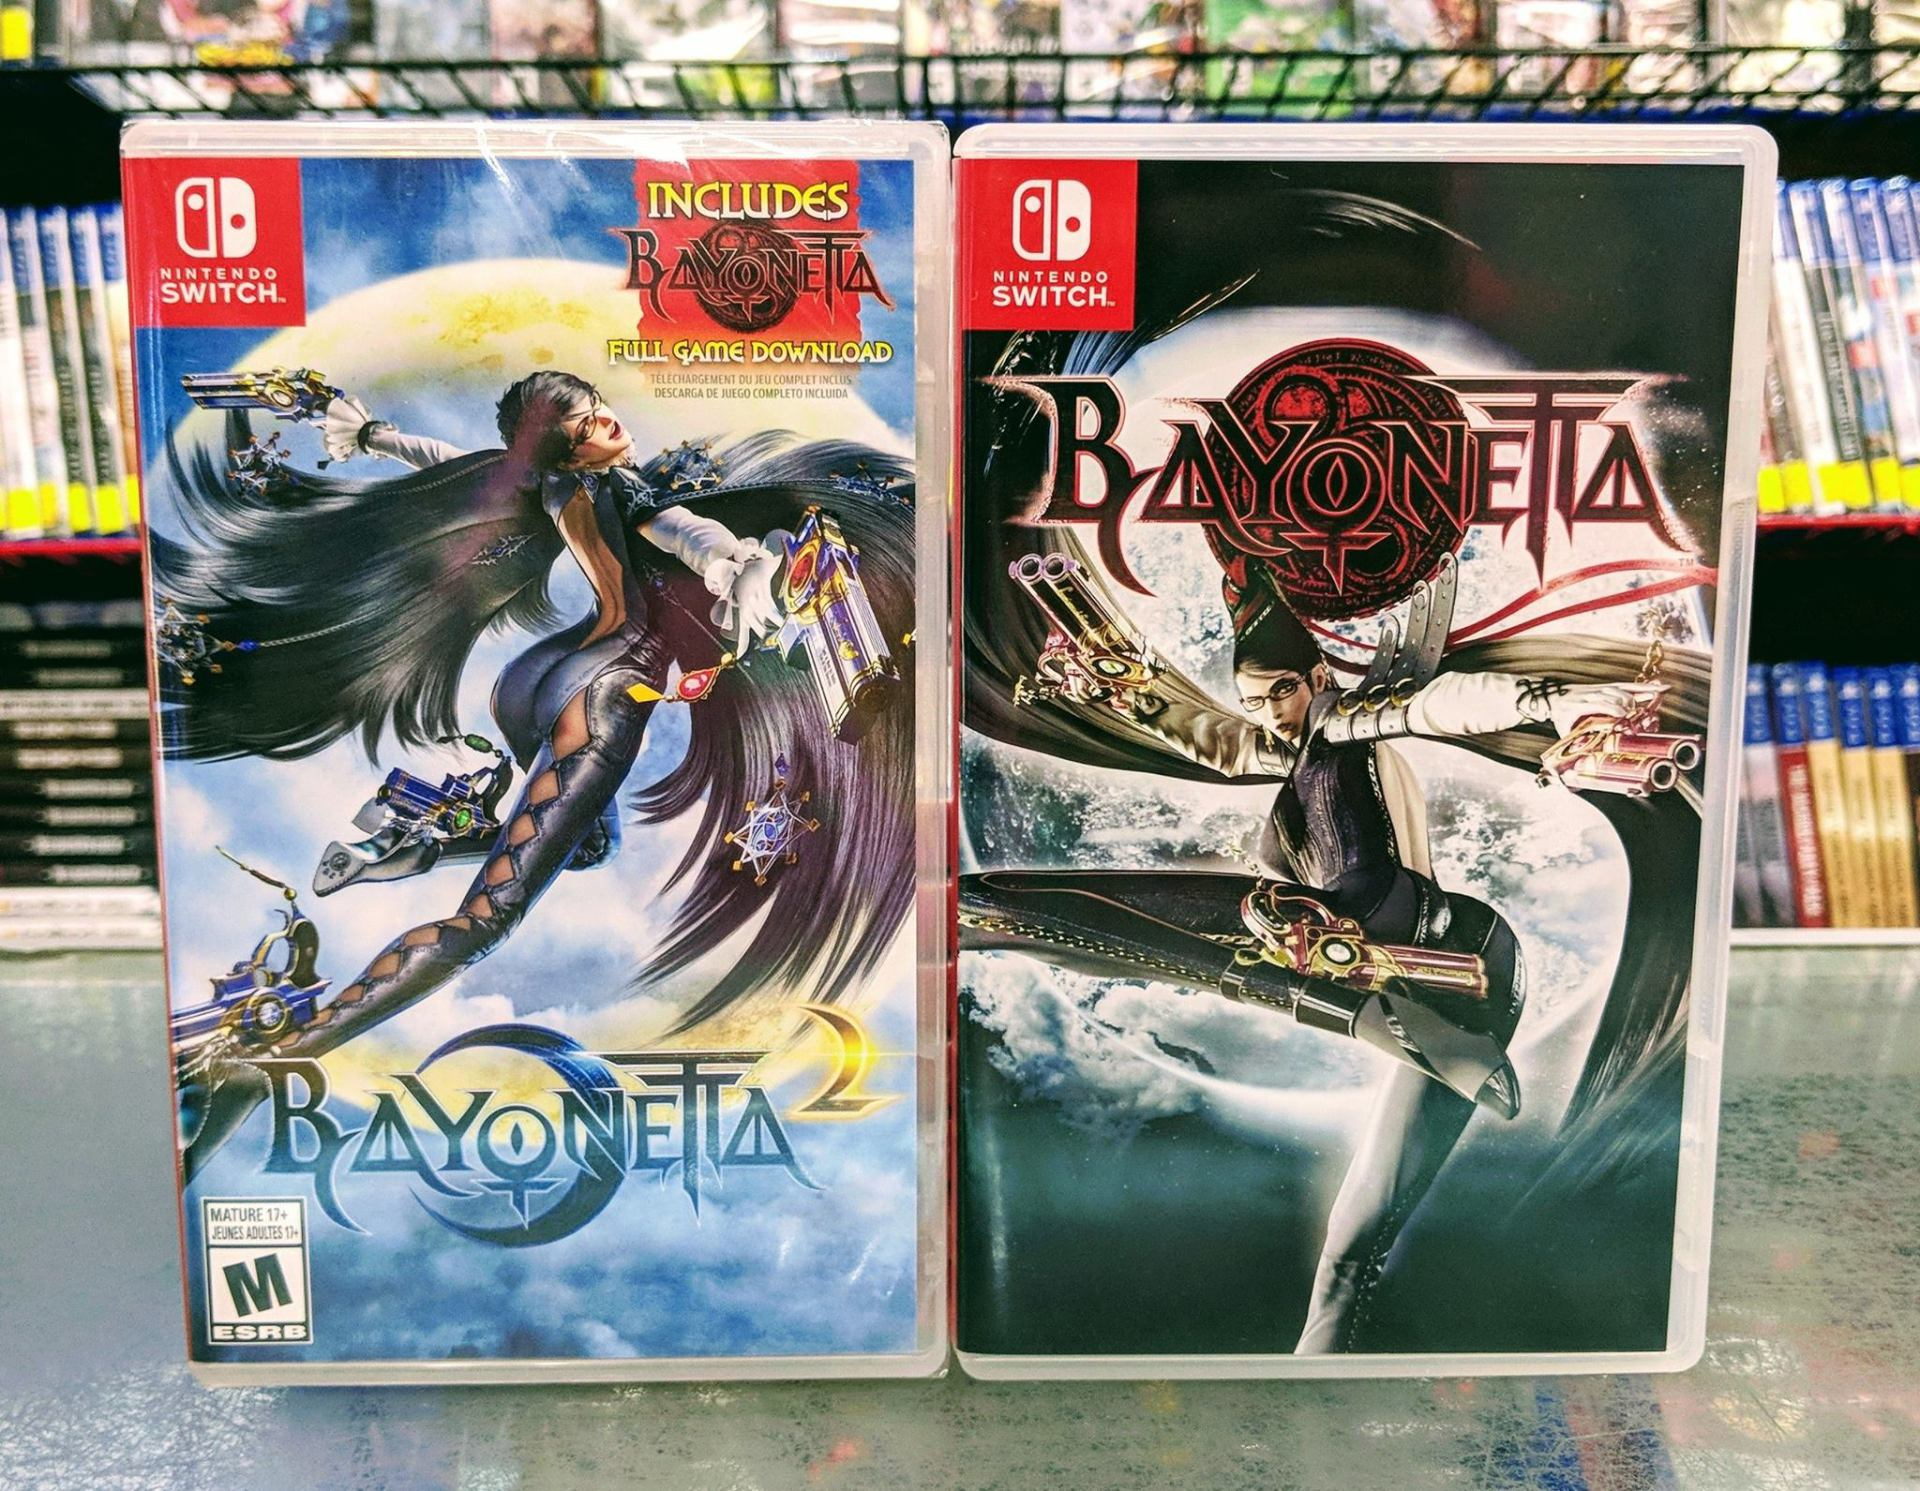 Bayonetta 1 Amp 2 Physical Release Will Have A Reversible Box Art For Nintendo Switch NinMobileNews